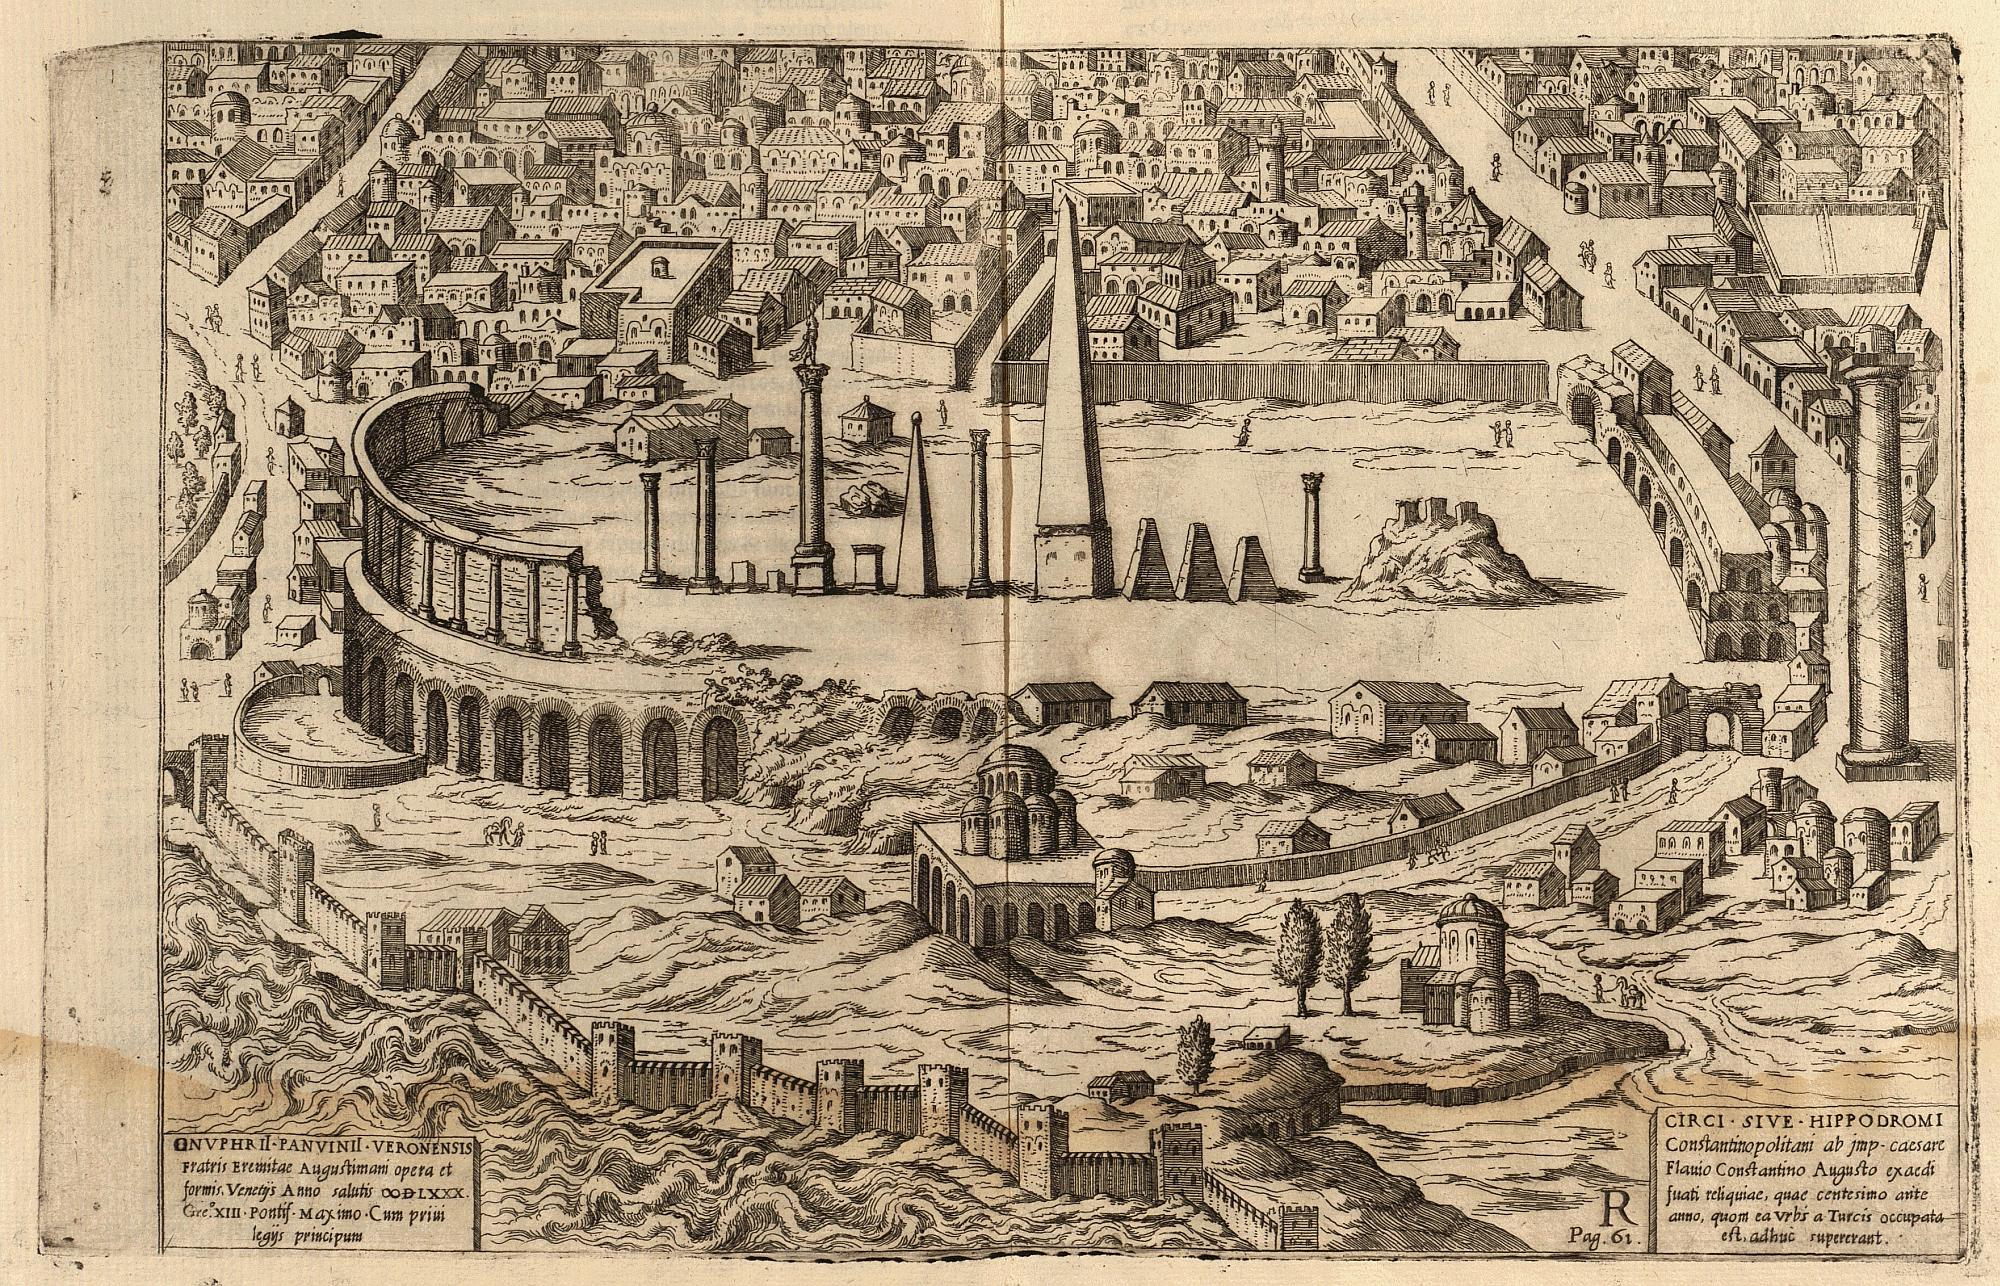 An old engraving of the Hippodrome at Constantinople, sabotaged by Google Boo...